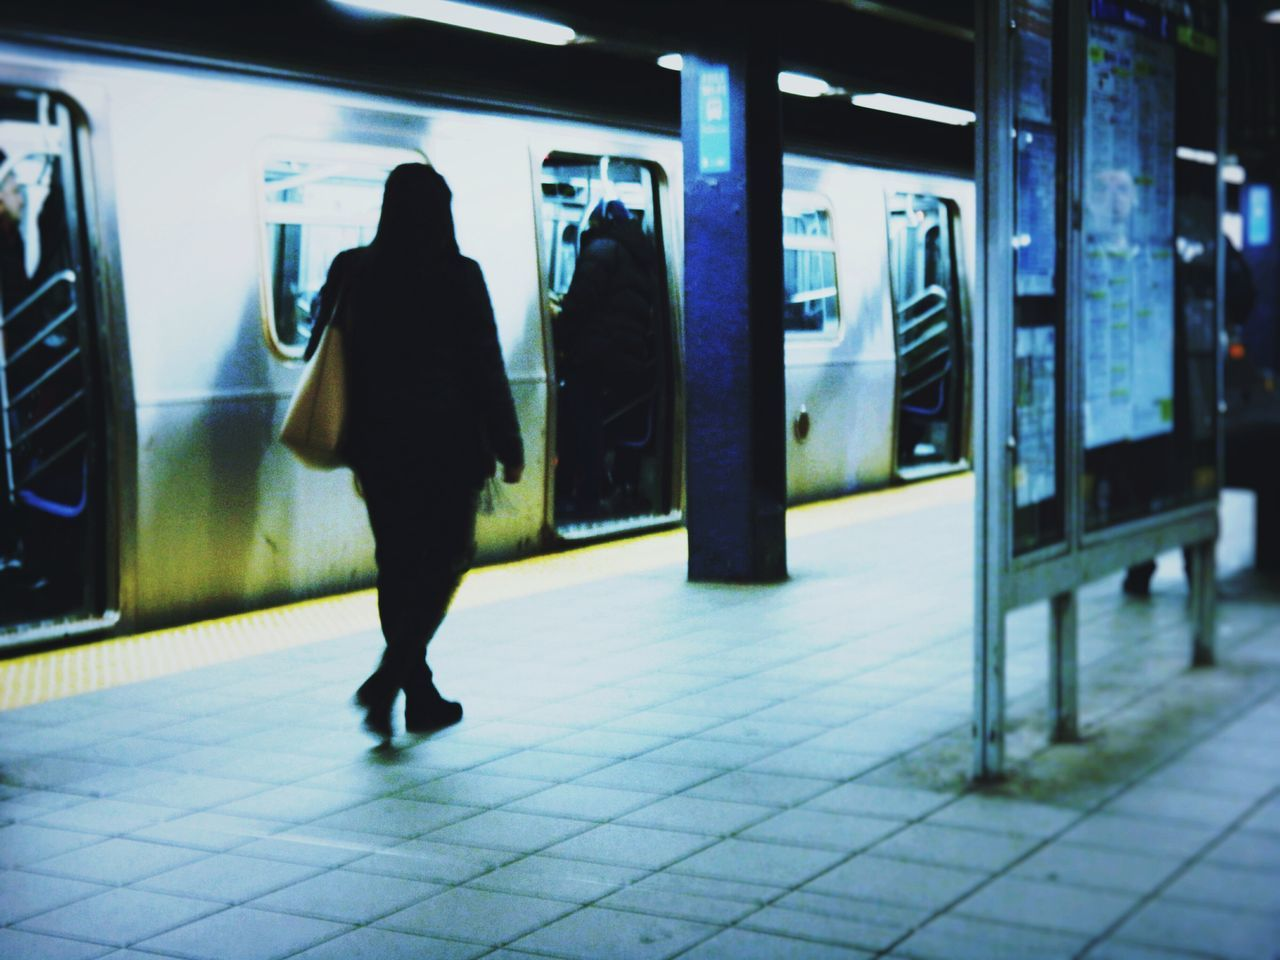 real people, public transportation, rear view, transportation, railroad station, railroad station platform, one person, full length, women, lifestyles, train - vehicle, men, standing, mode of transport, rail transportation, illuminated, outdoors, day, adult, people